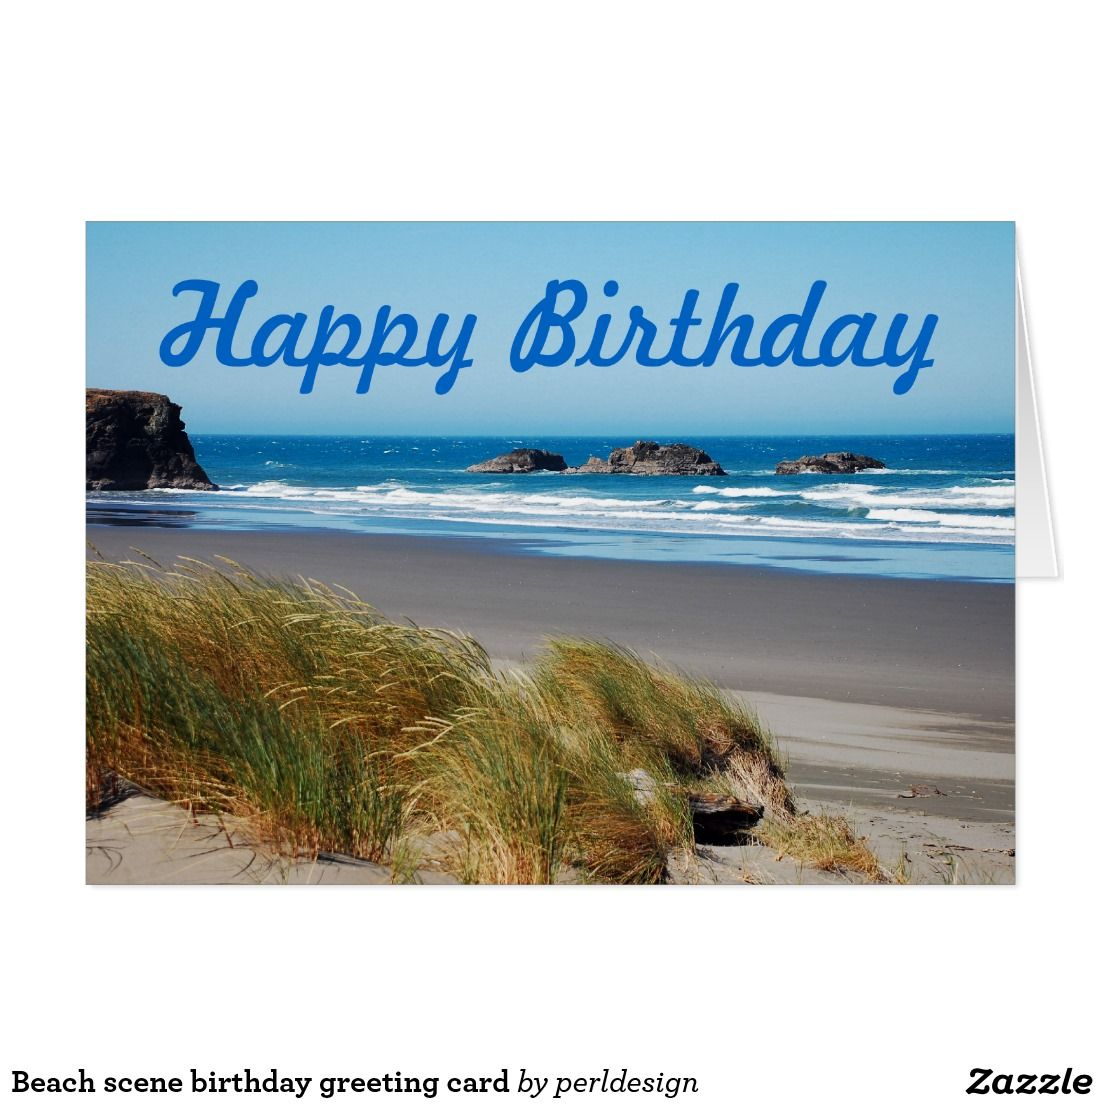 Beach Scene Birthday Greeting Card Cards Jpg 1104x1104 Themed Wishes